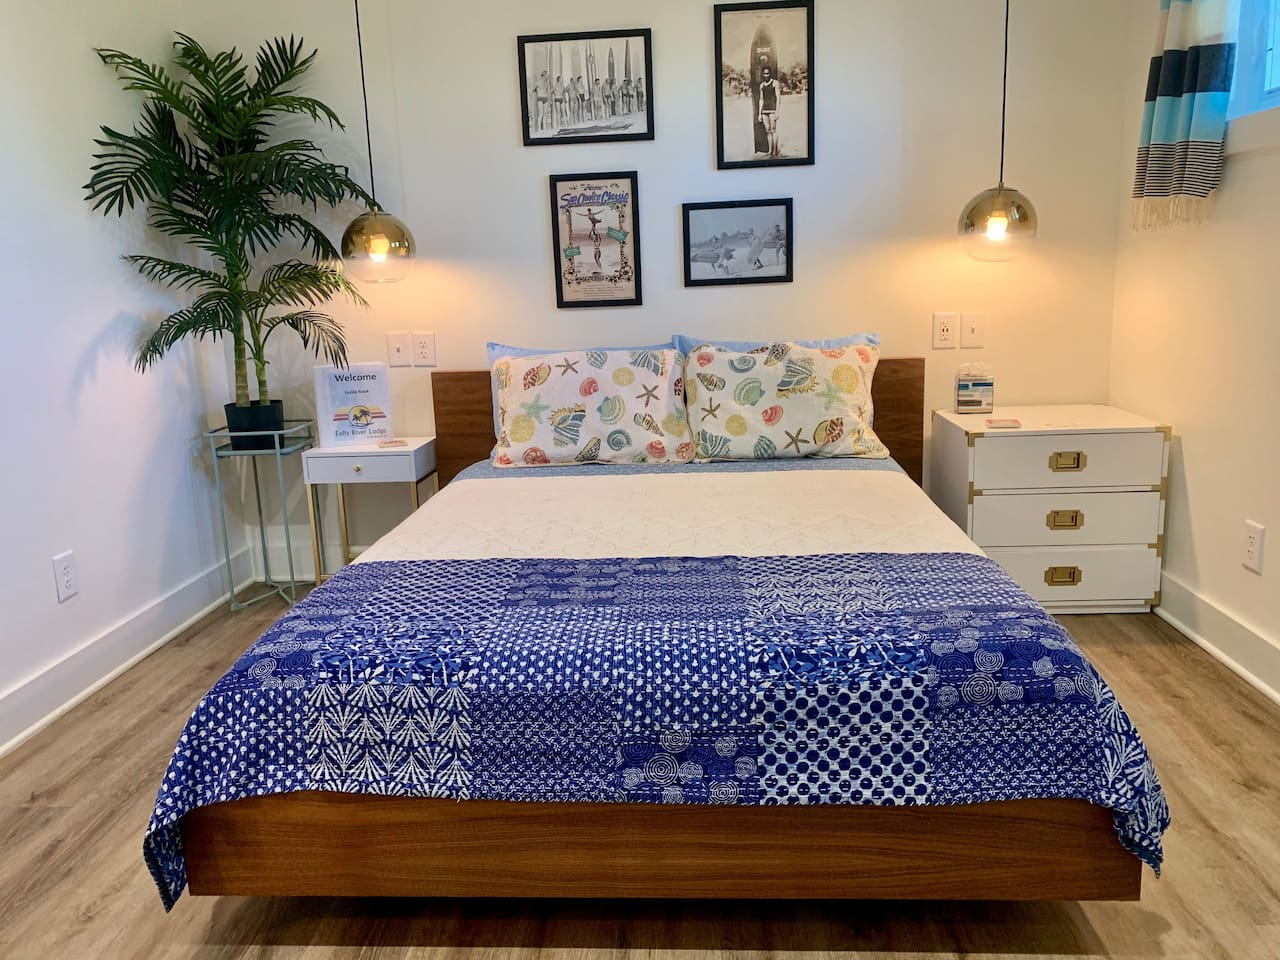 Room #6 at Folly River Lodge has a super comfortable queen-size foam mattress with night stands on both sides and soft bedding